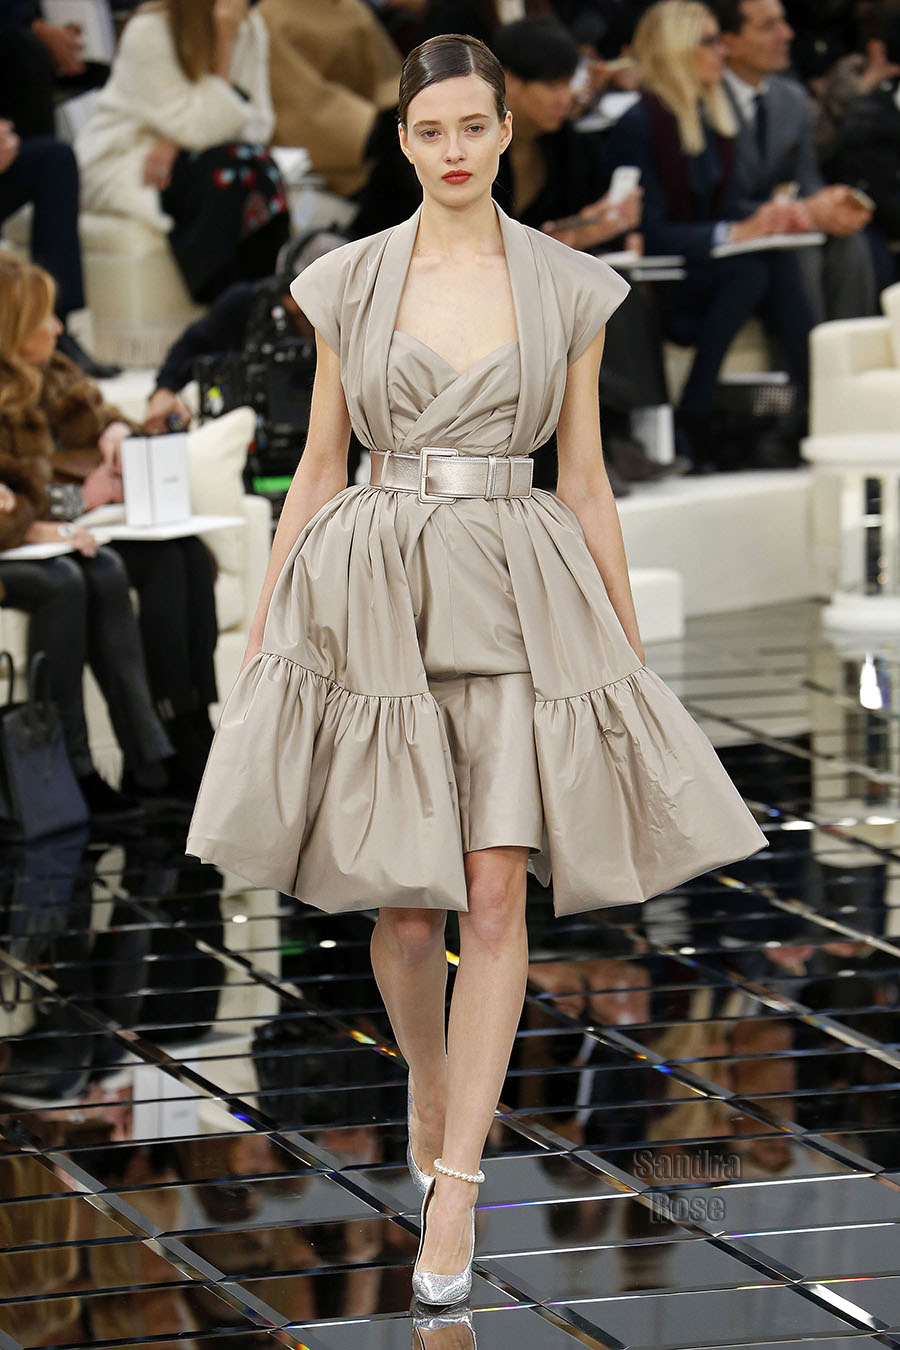 Chanel Haute Couture Spring/Summer 2017 in Paris